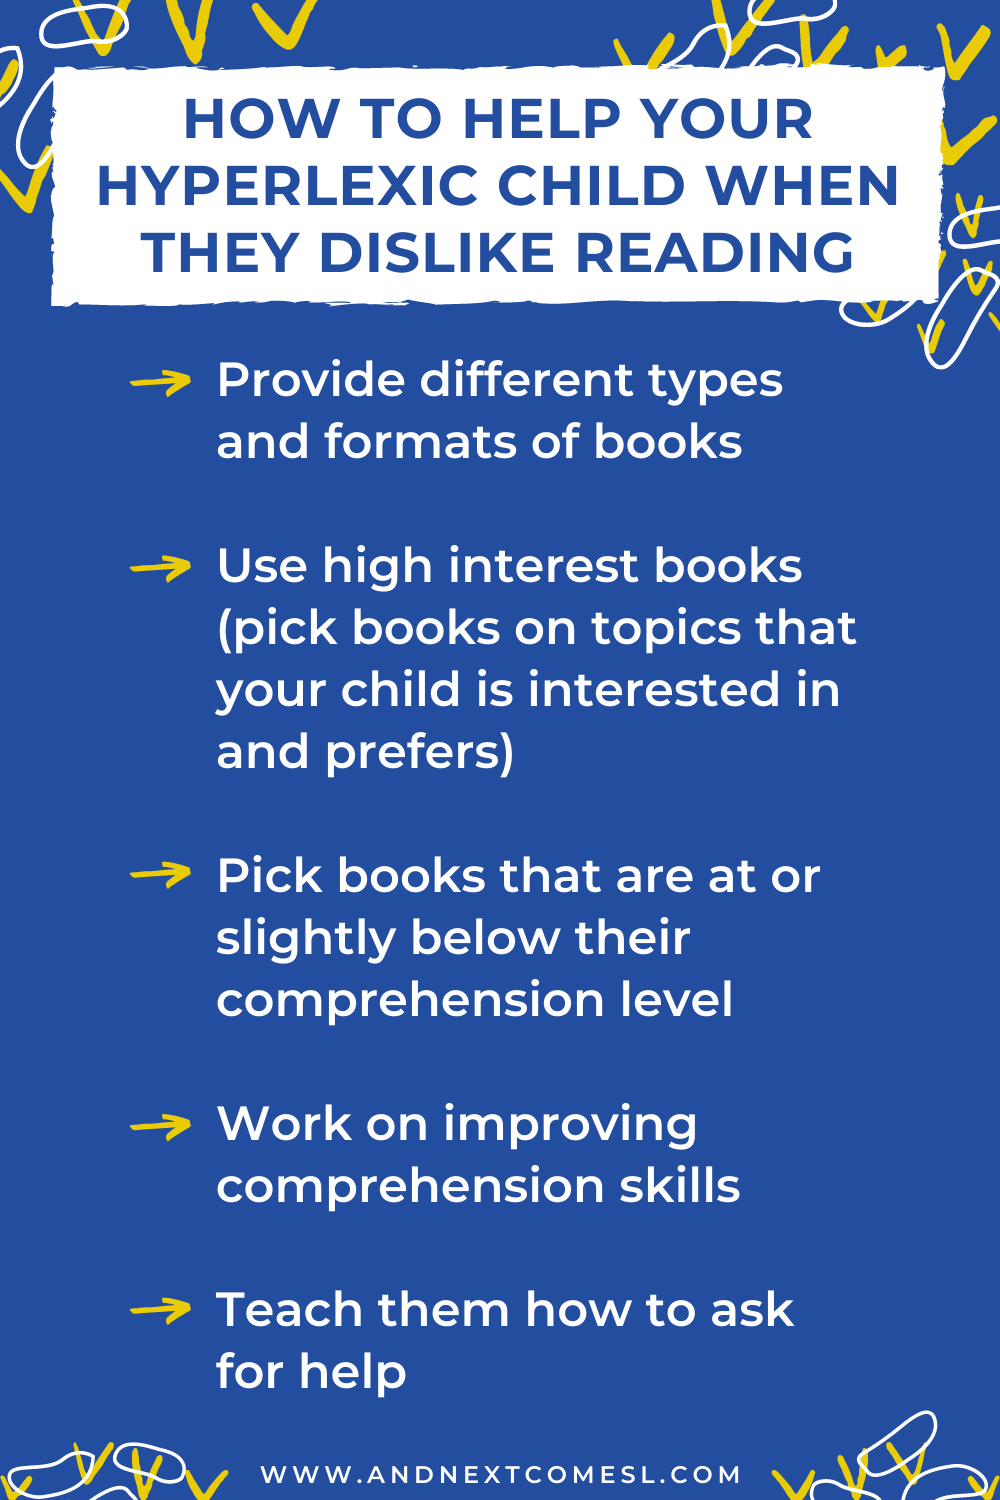 How to help a child with hyperlexia when they start to dislike reading